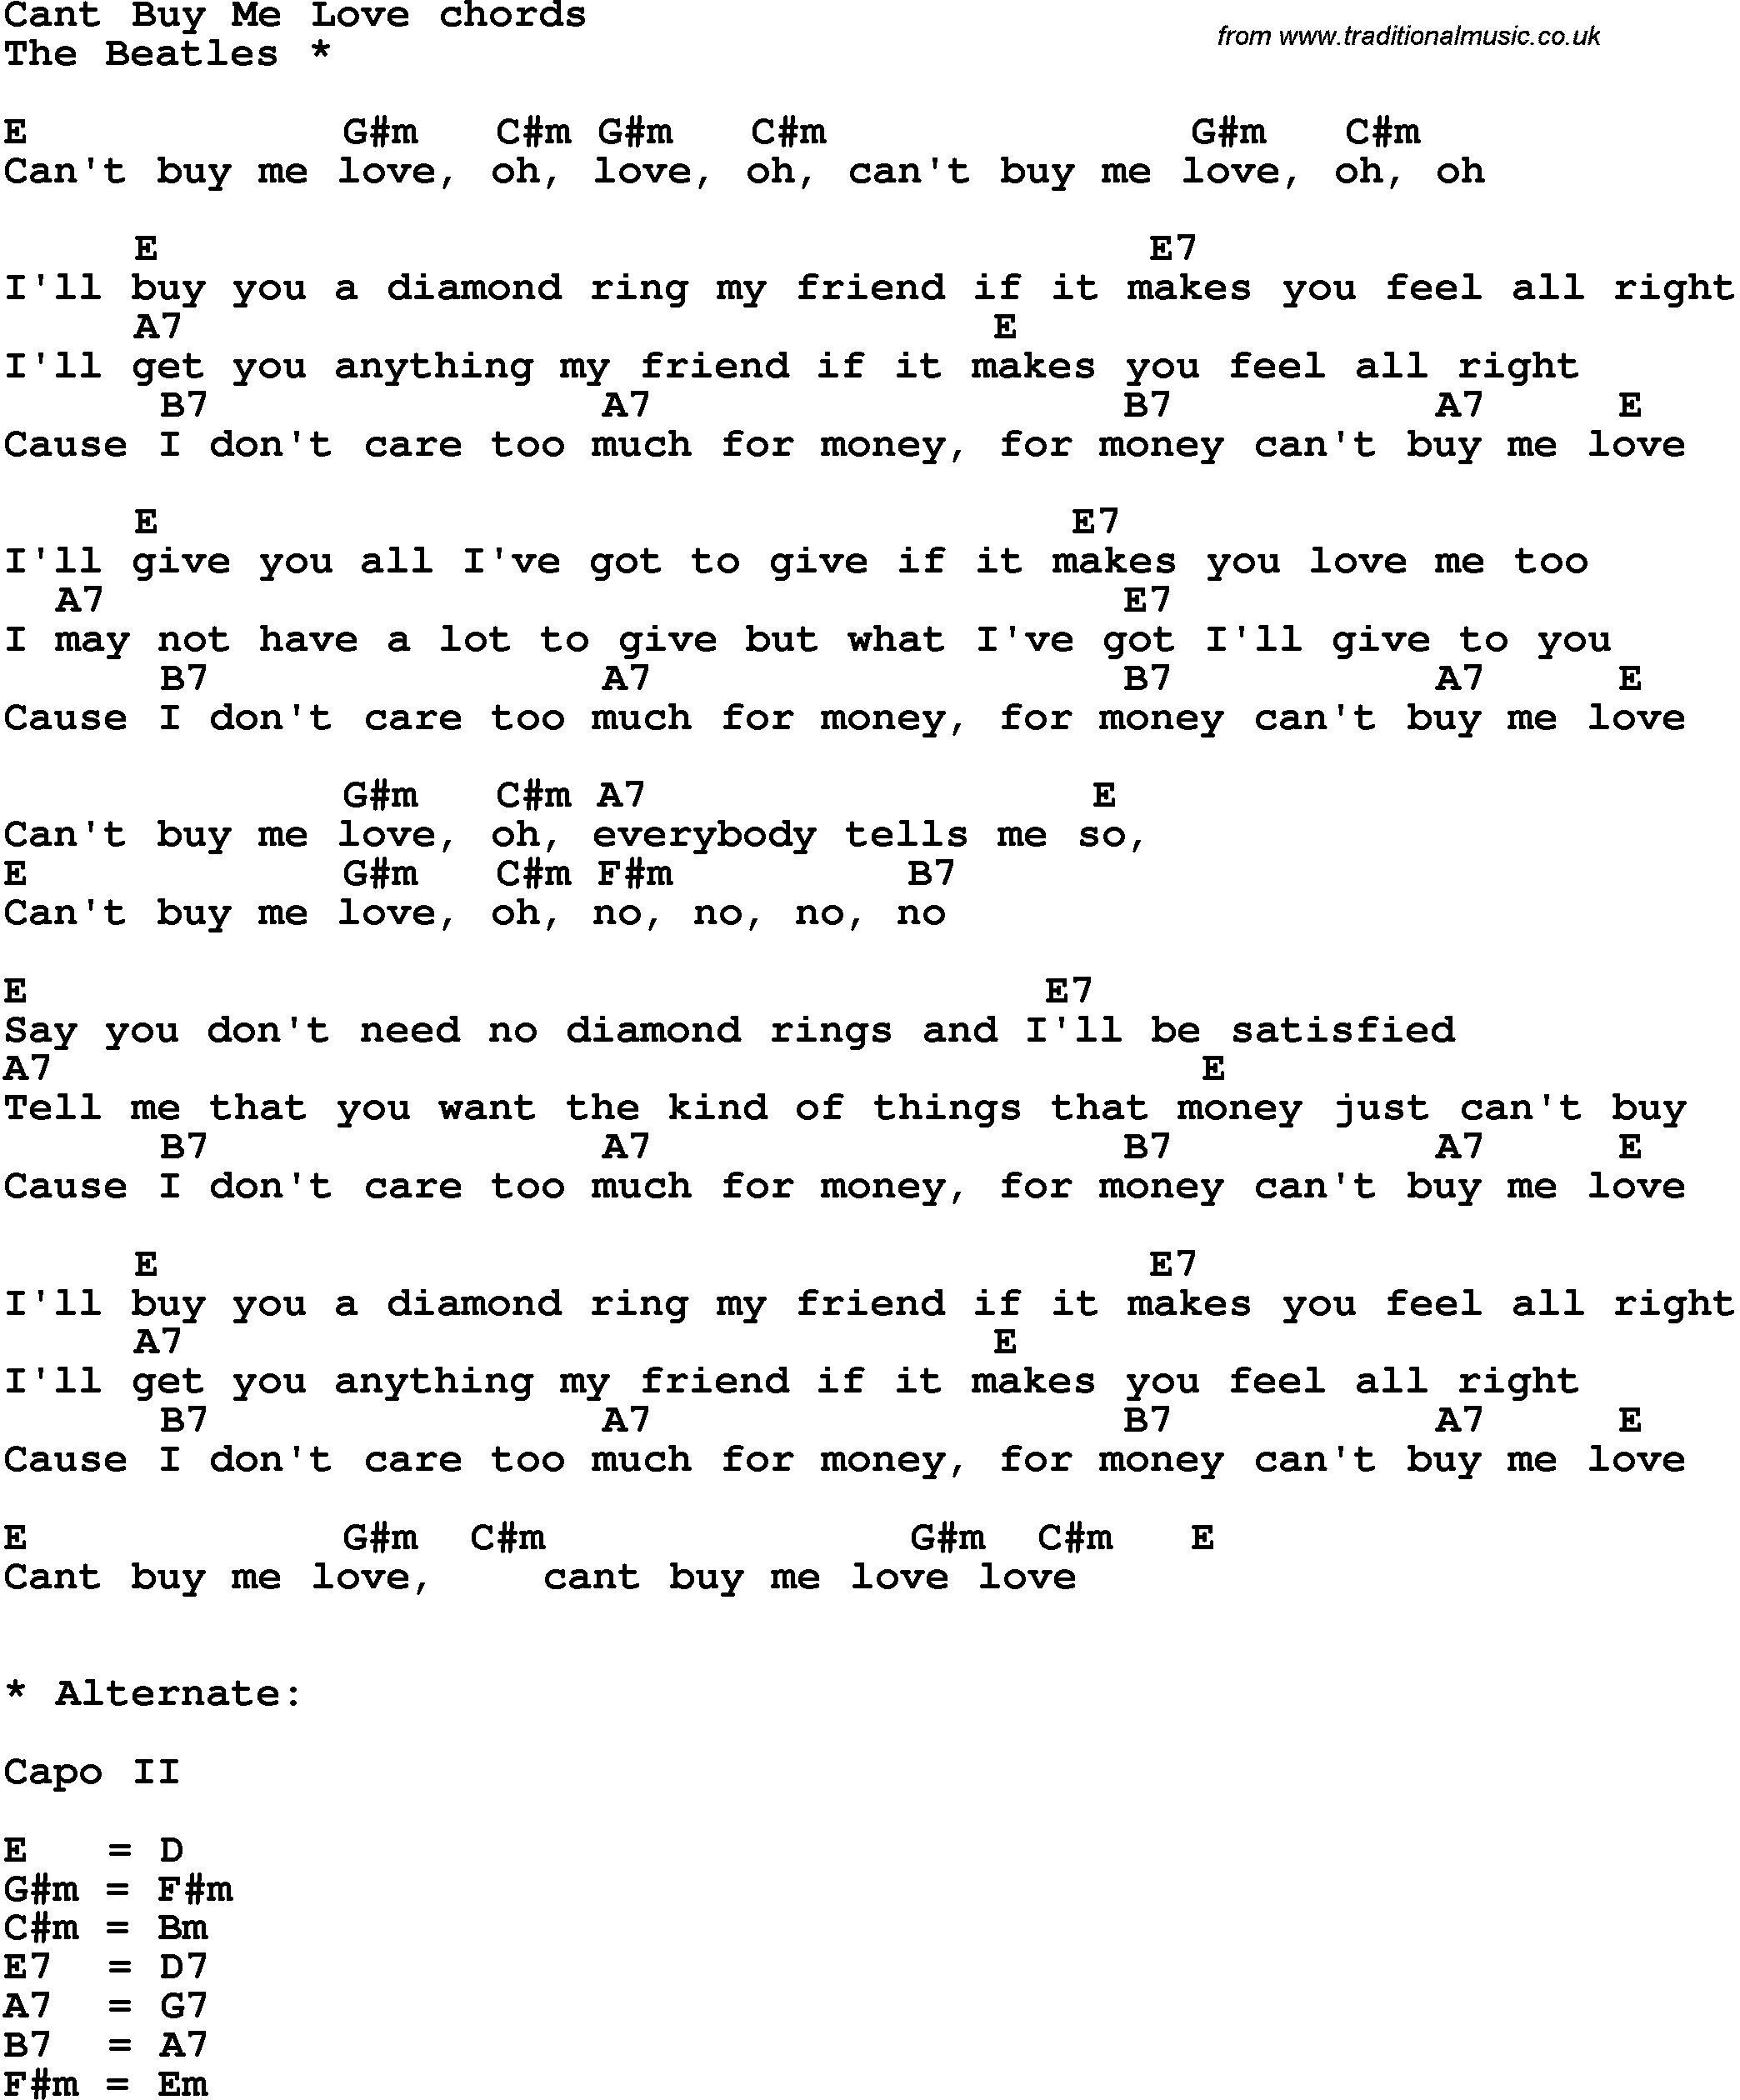 Make You Feel My Love Chords Song Lyrics With Guitar Chords For Cant Buy Me Love The Beatles